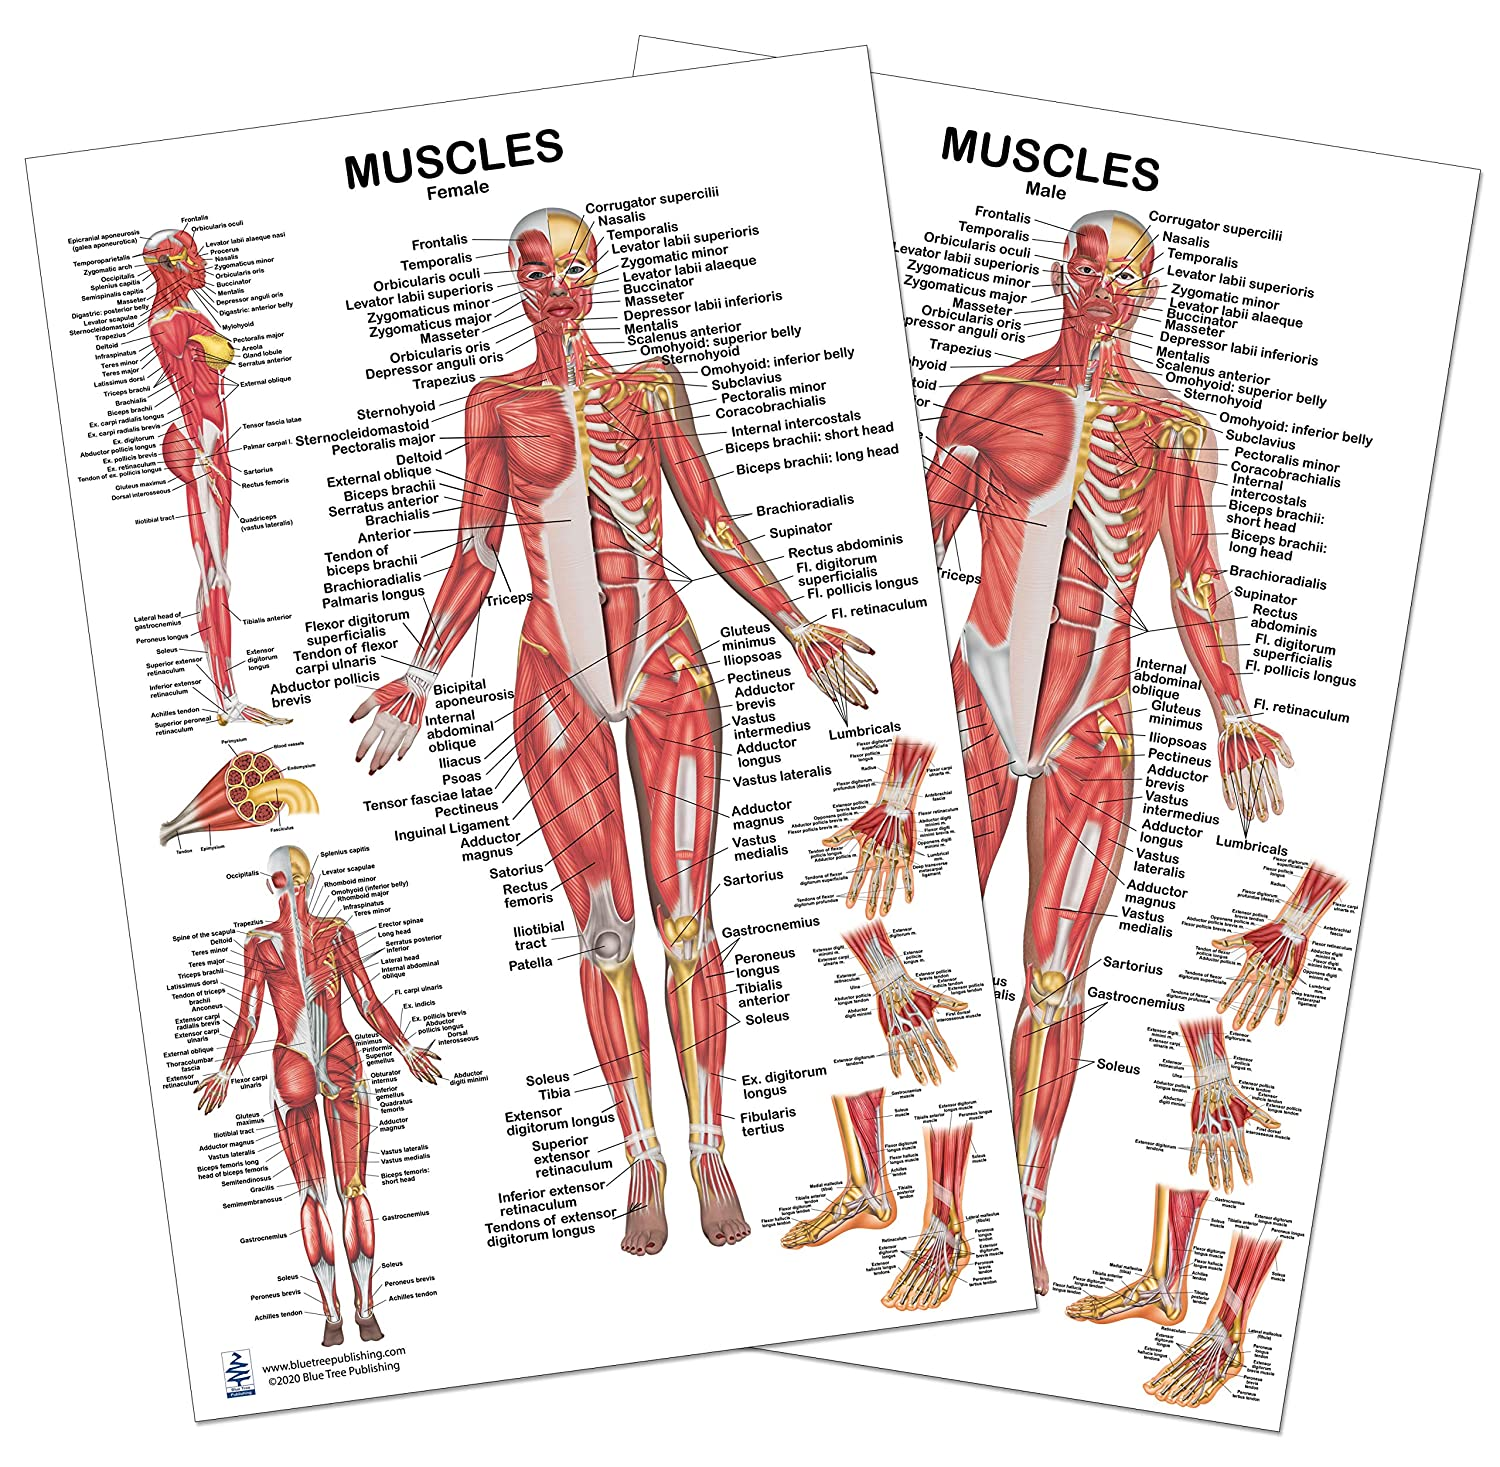 2 Poster Today's only Set Muscles Female Spring new work 24x36inch for Male and